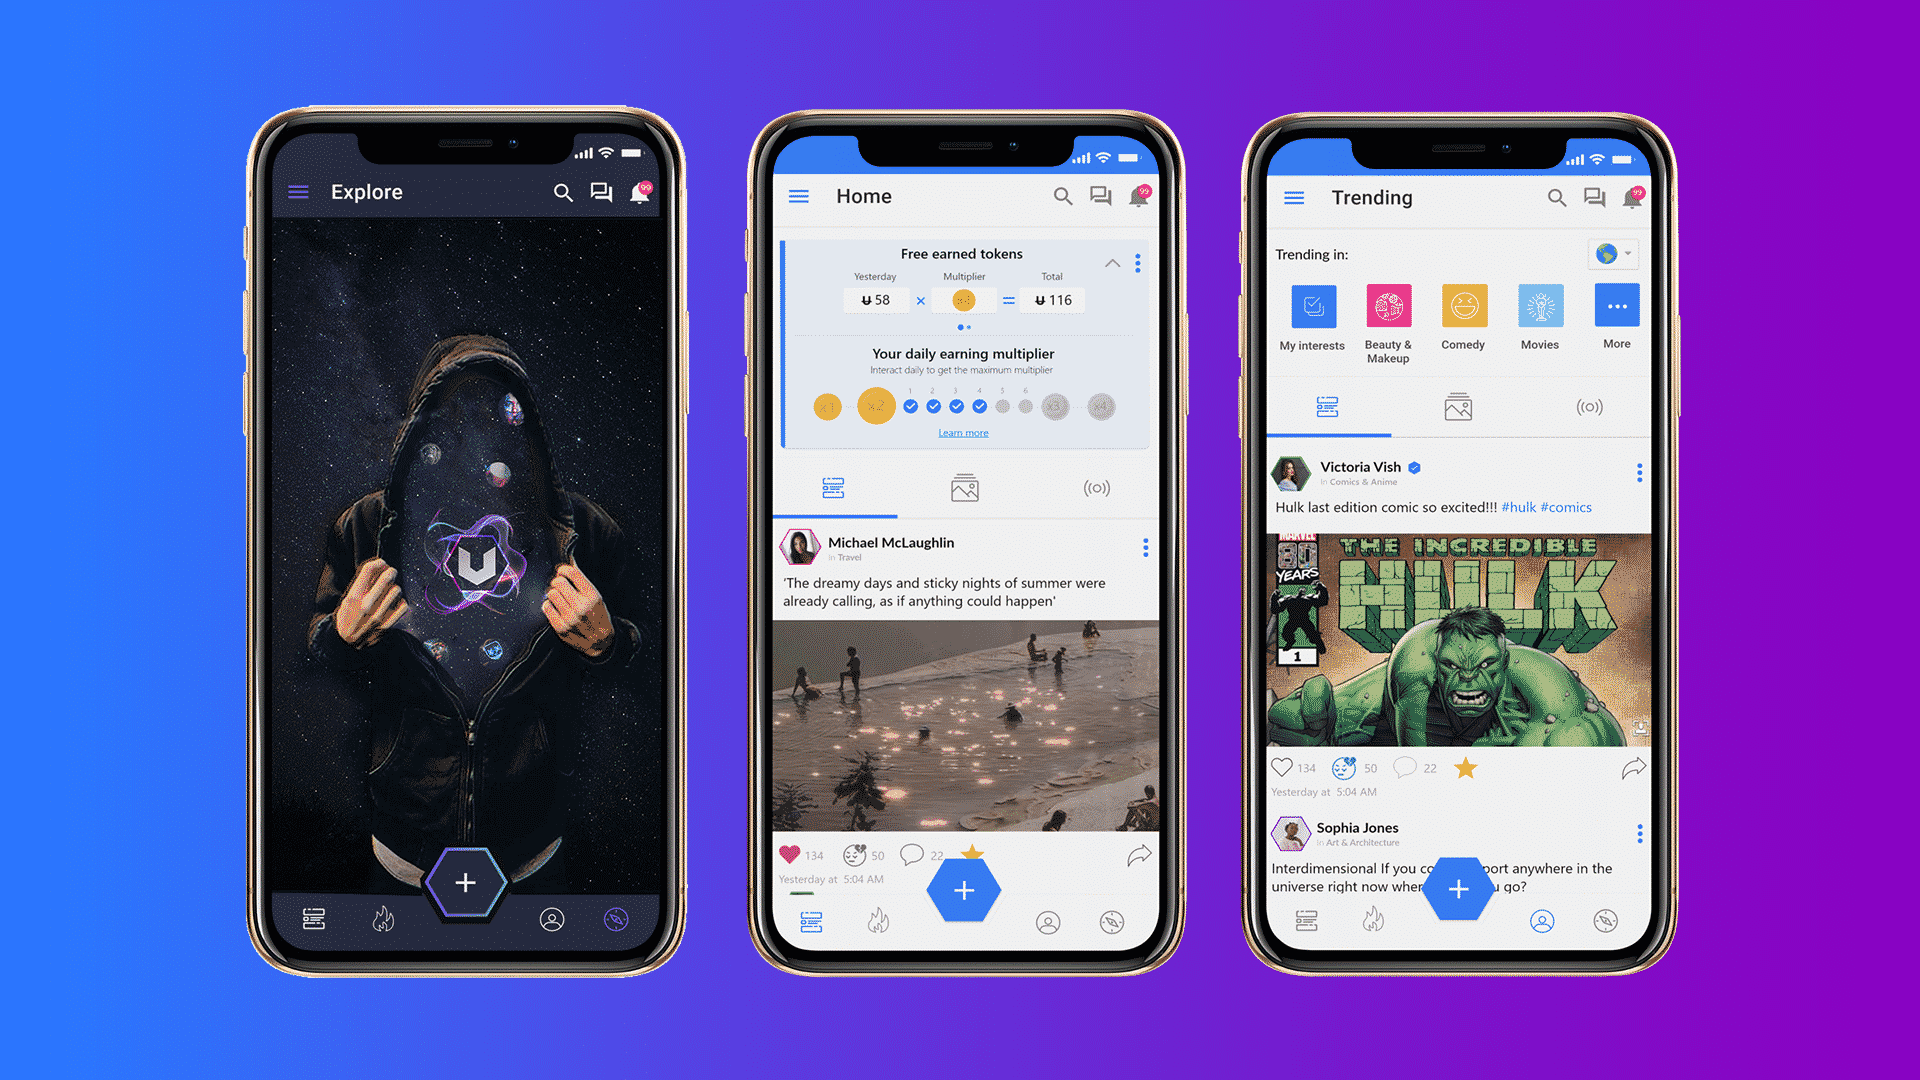 Next-Gen Social Network - Uhive - Sharing 8 Billion Crypto Tokens with Users